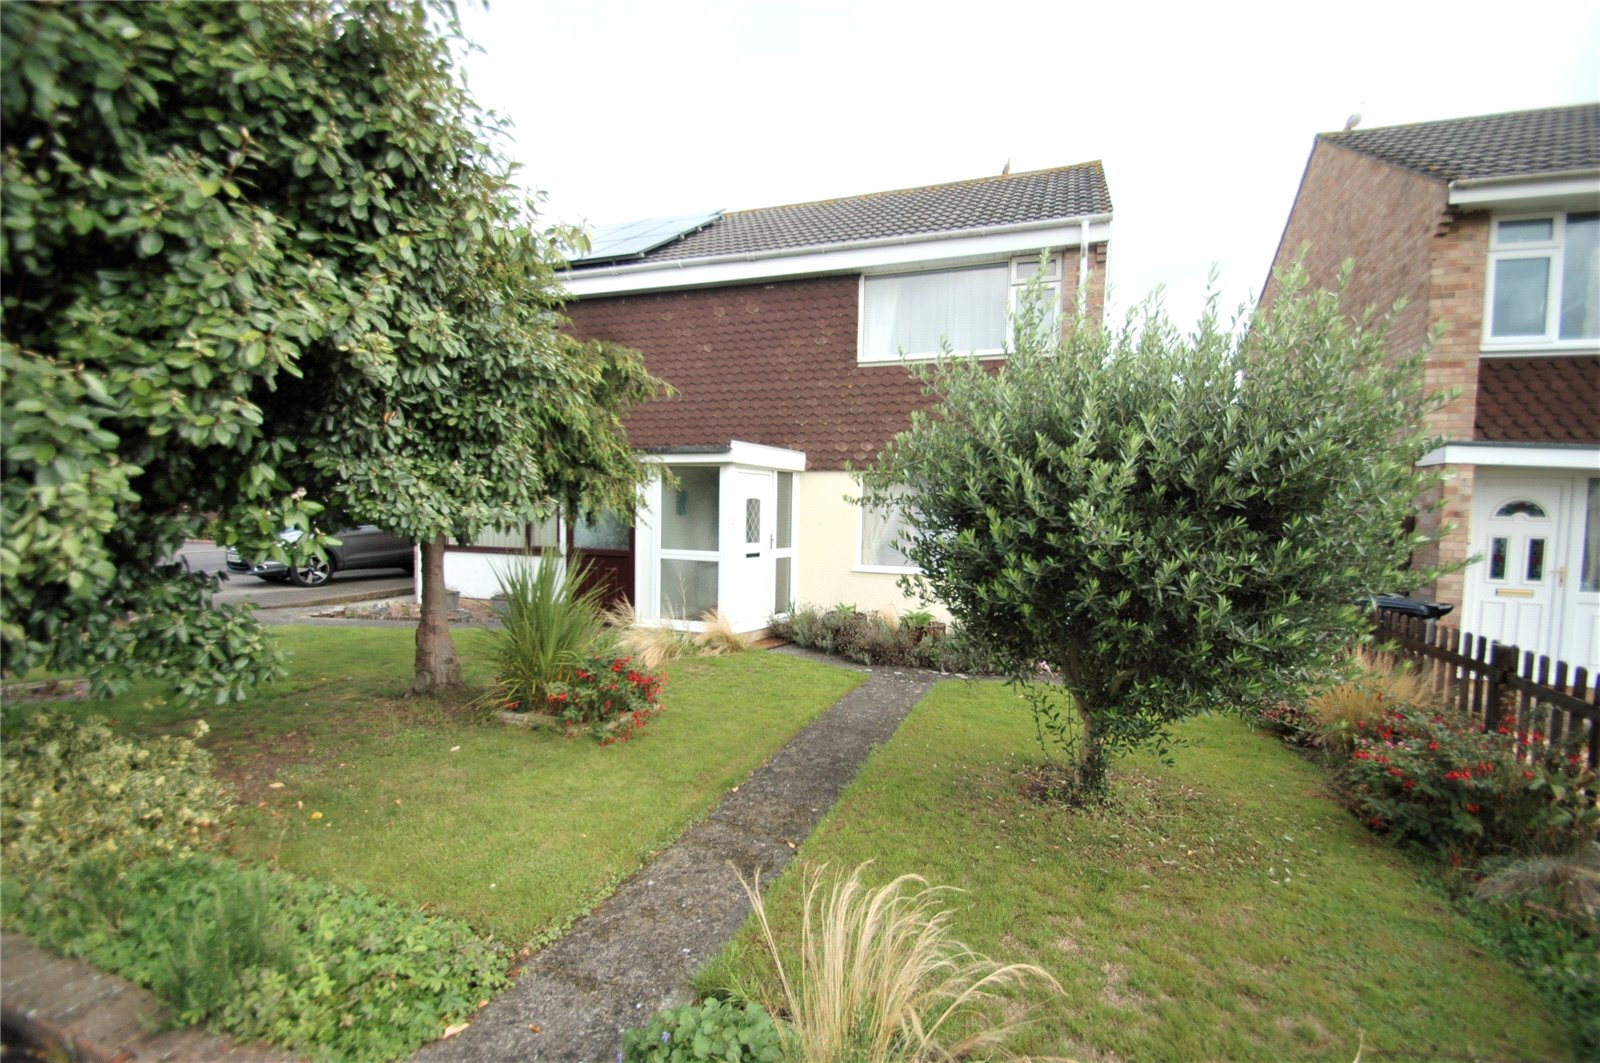 3 Bedrooms Semi Detached House for sale in Hawthorn Close Bridgwater Somerset TA6